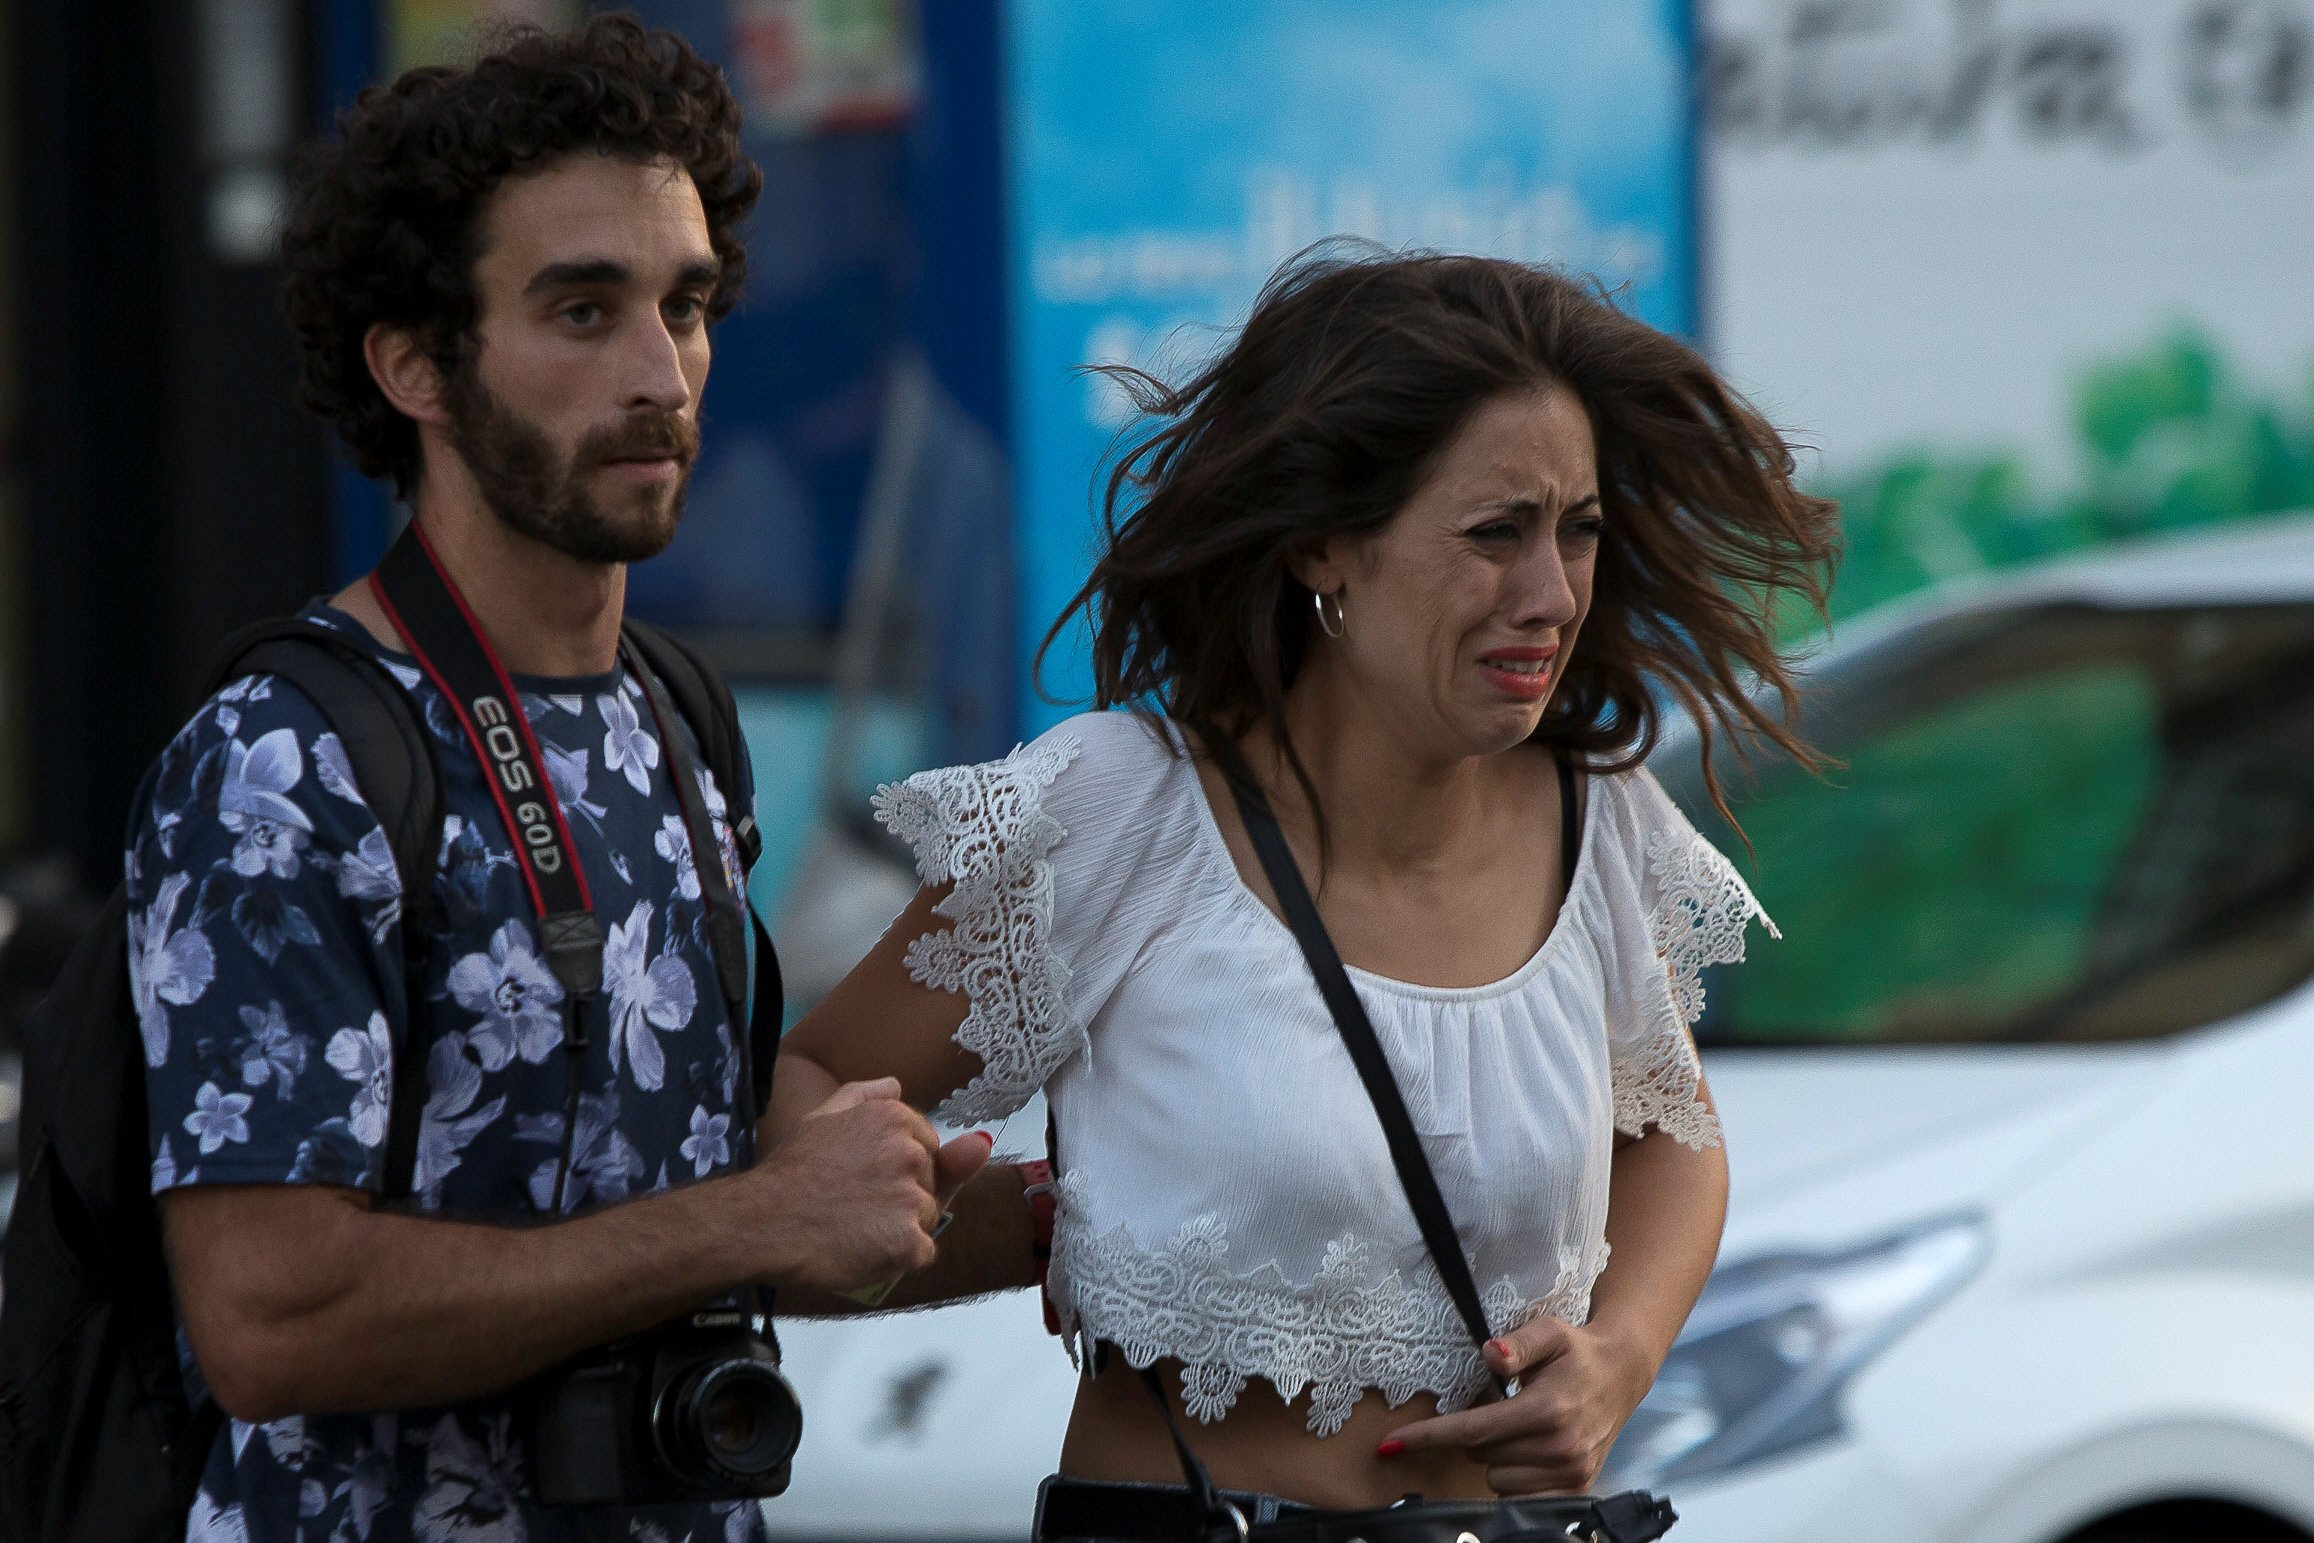 spanish emergency service claims pakistanis among dead injured in attacks